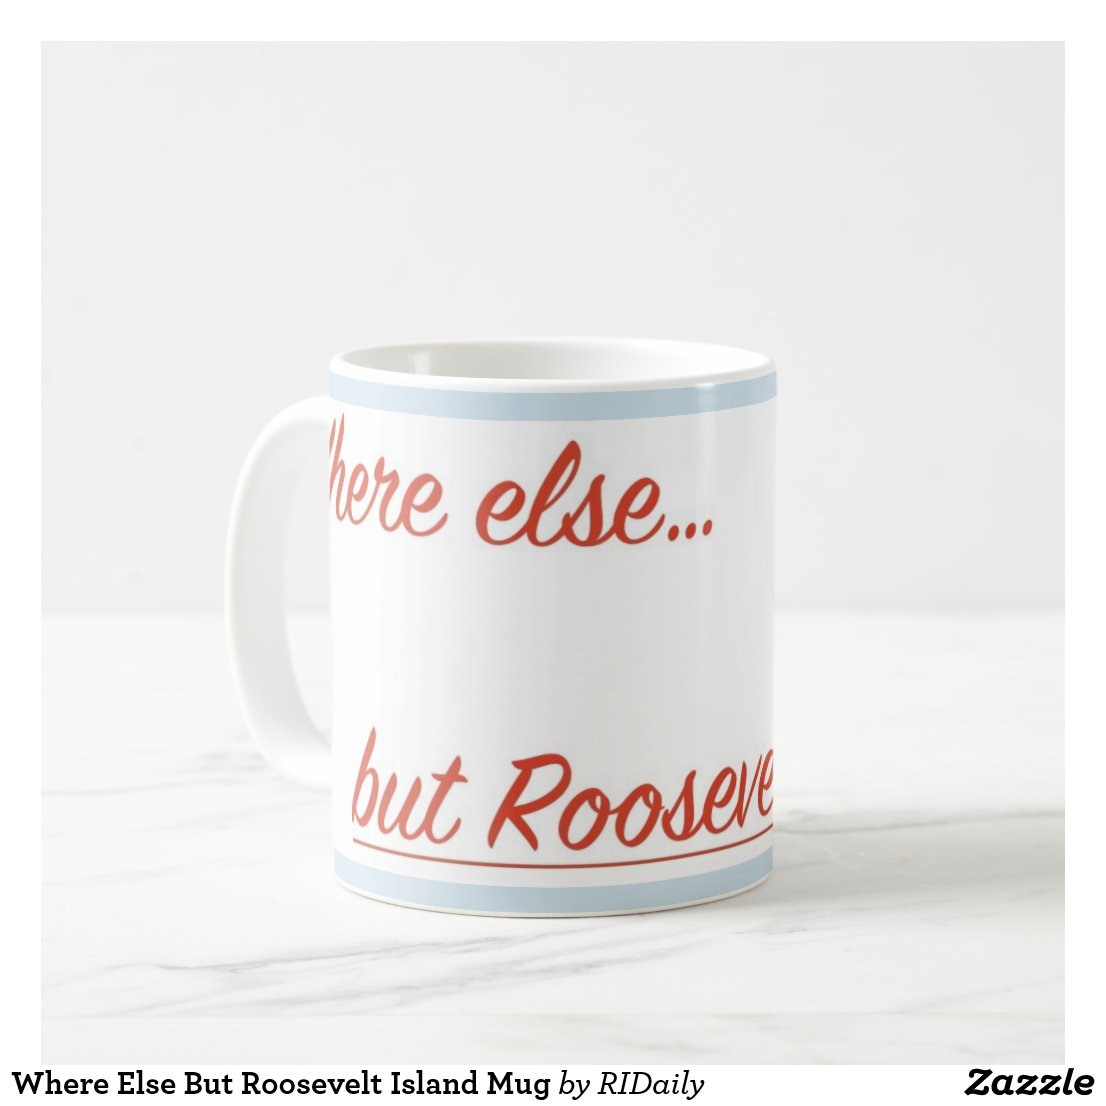 Where Else But Roosevelt Island Mug